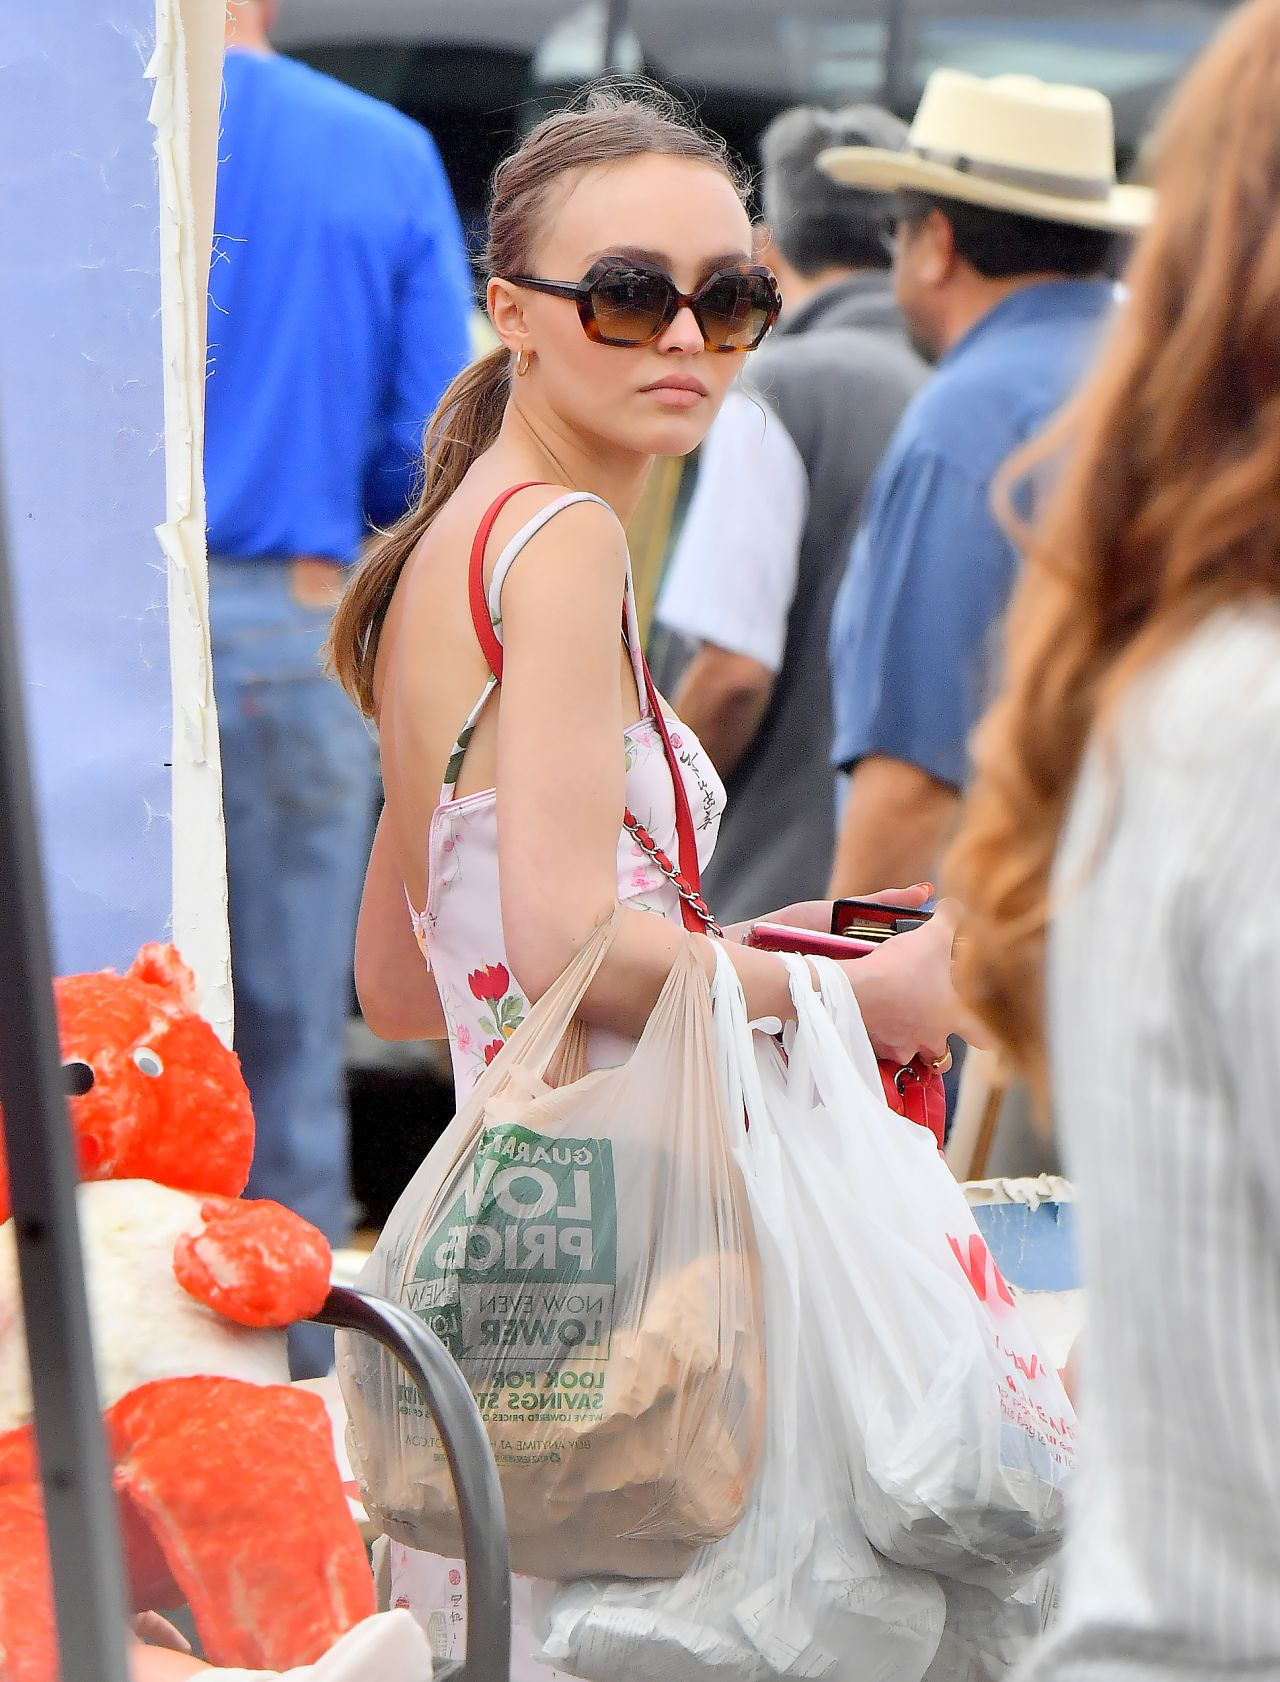 b5570260679 Lily-Rose Depp - Shopping With Friends in Los Angeles 06 11 2017